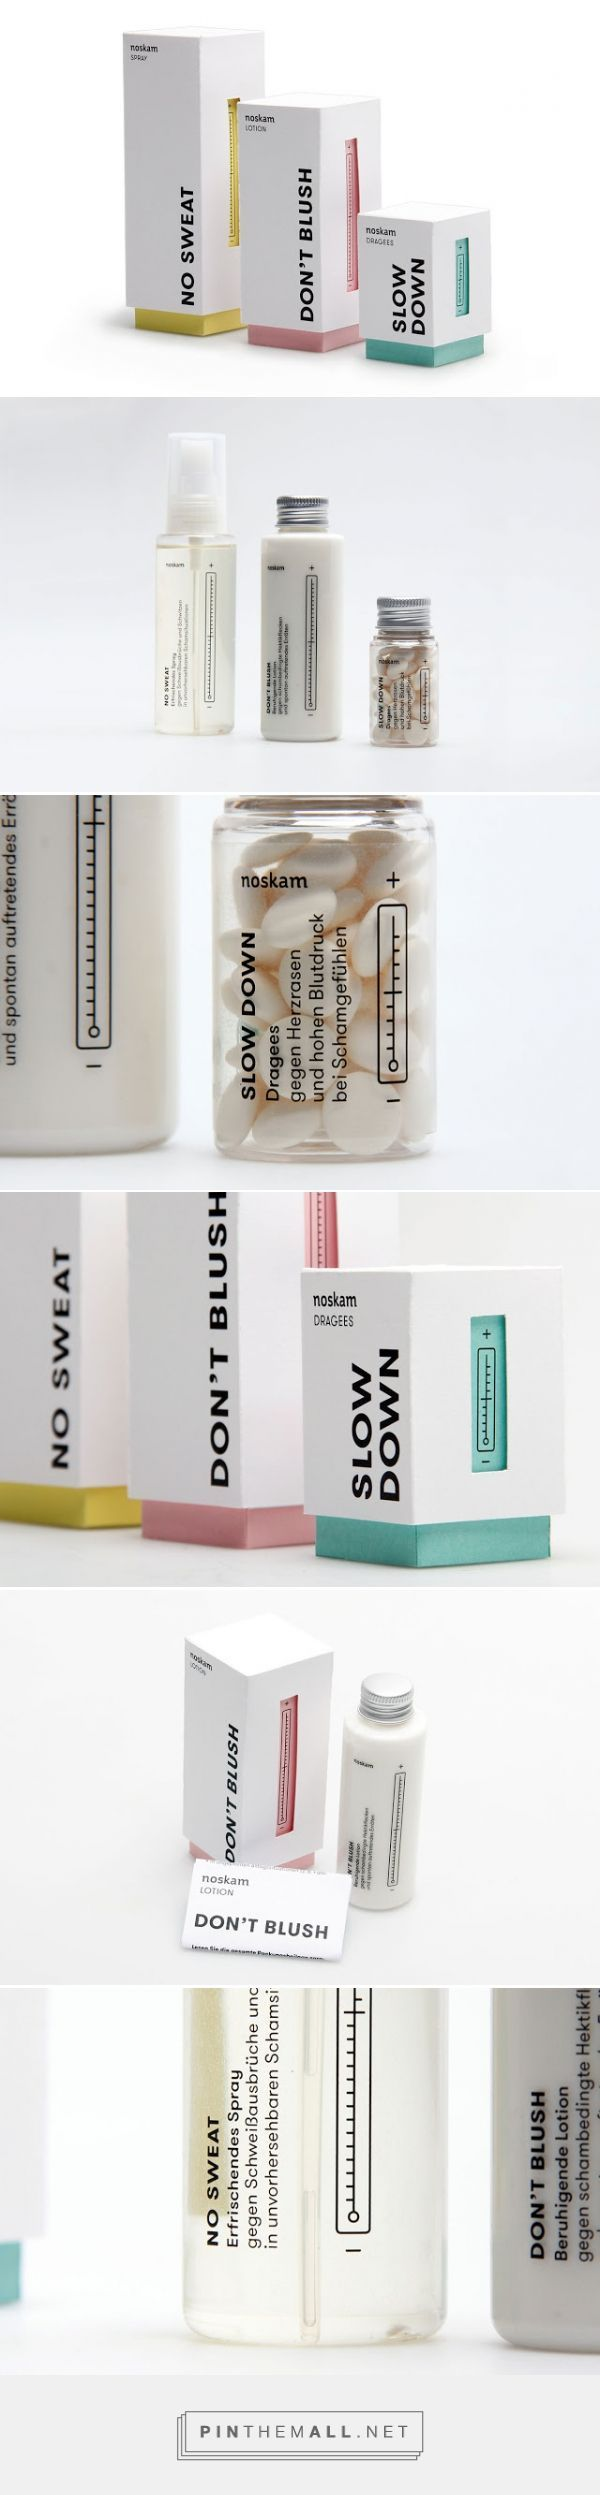 Noskam Student packaging concept designed by muskat (Germany)